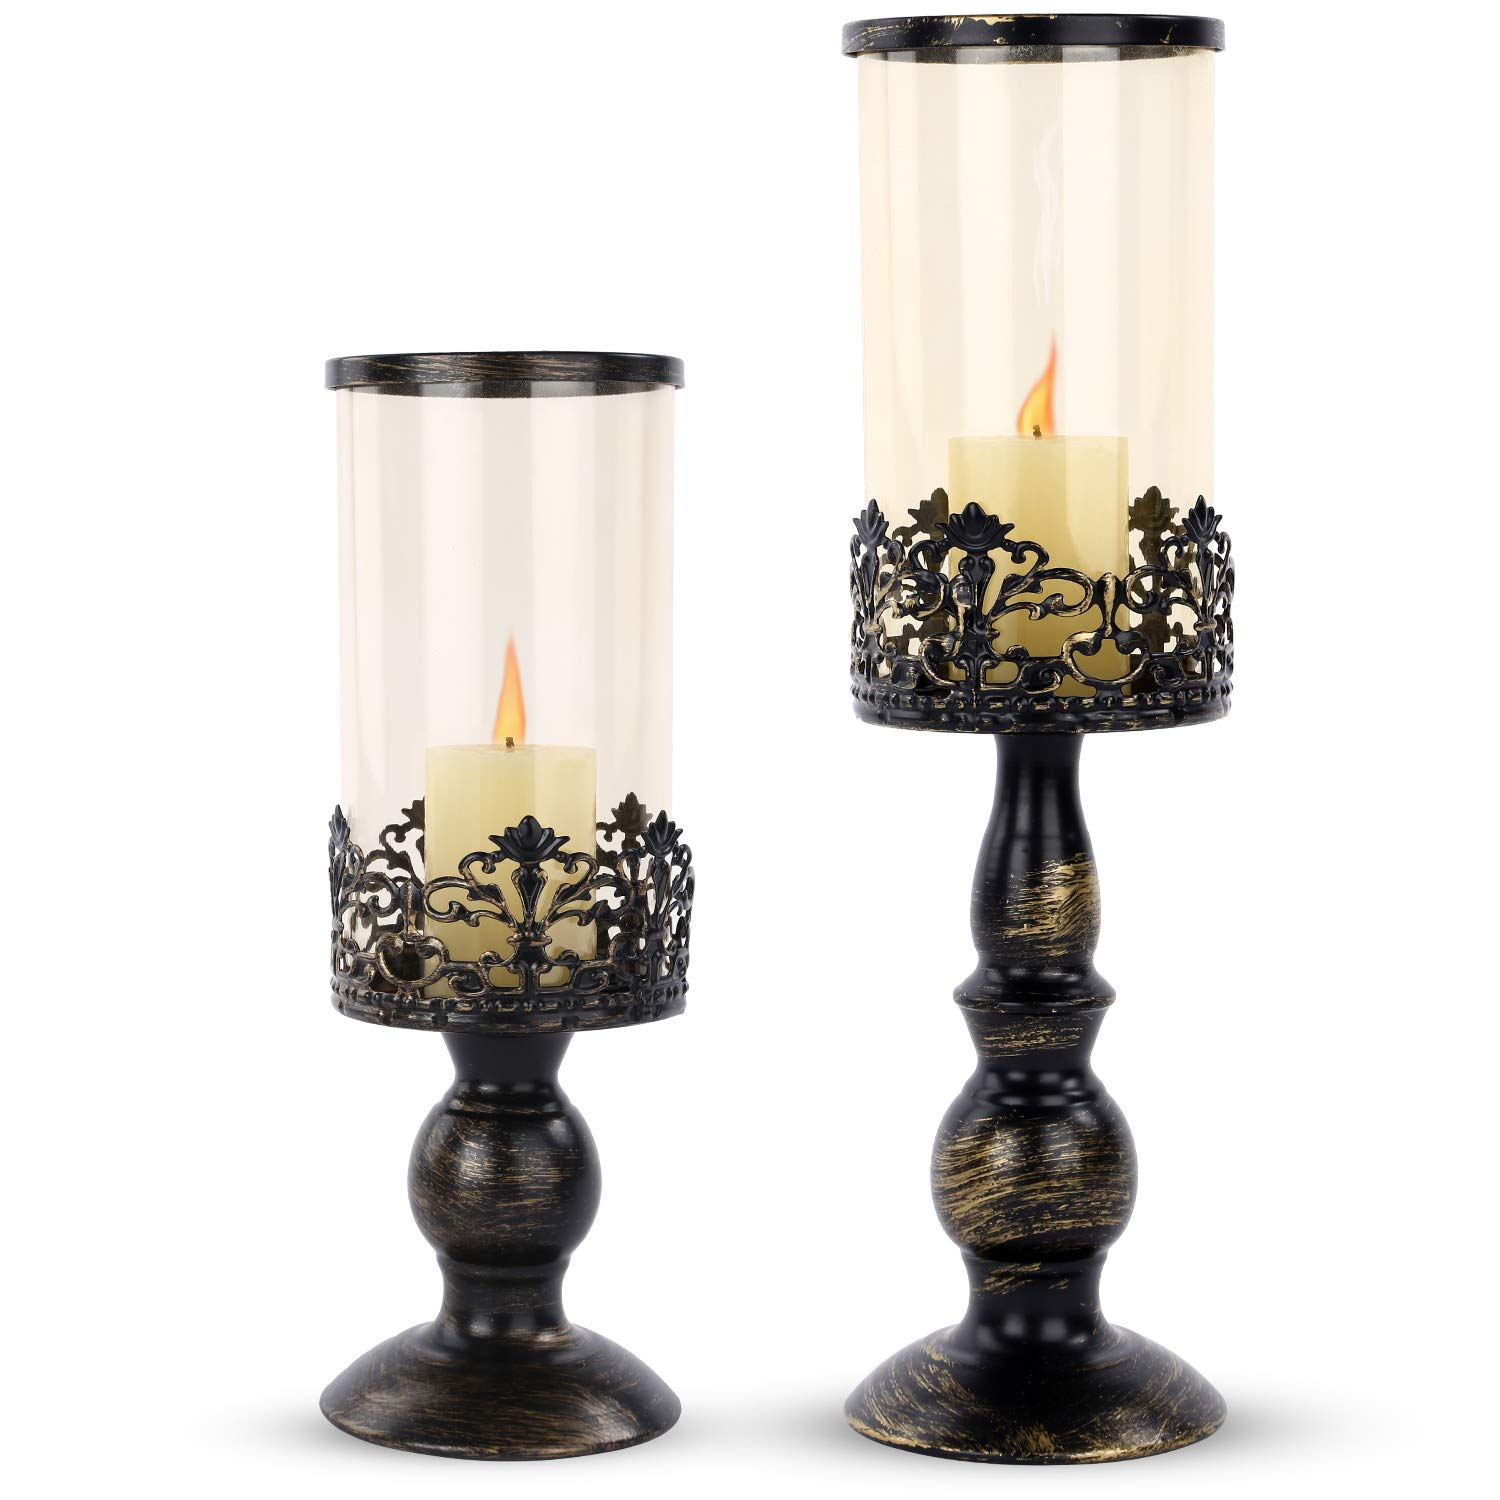 SMEL 2pcs Creative European Candle Holders Candlelight Dinner Wedding Romantic Candlesticks Household Furnishing Articles Iron Glass for Home Decor. (14.96'')